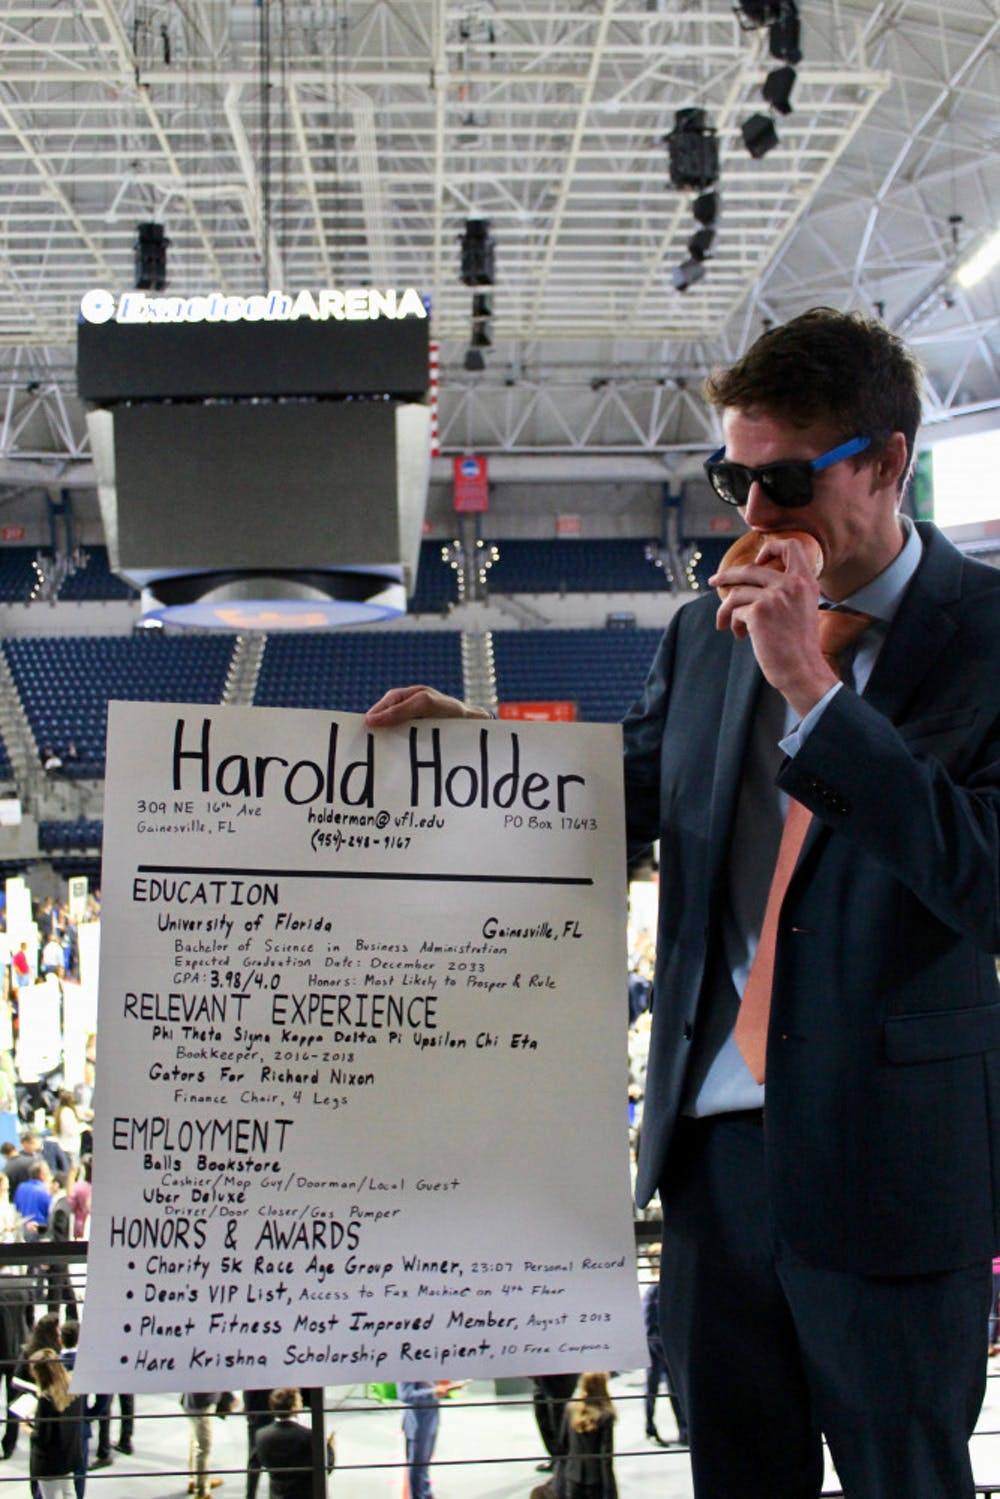 """<p><span>Kevin Kimbrough, a 23-year-old computer science engineering sixth year, played the character of """"Harold Holder"""" to cheer up students and employers at Career Showcase.</span></p>"""